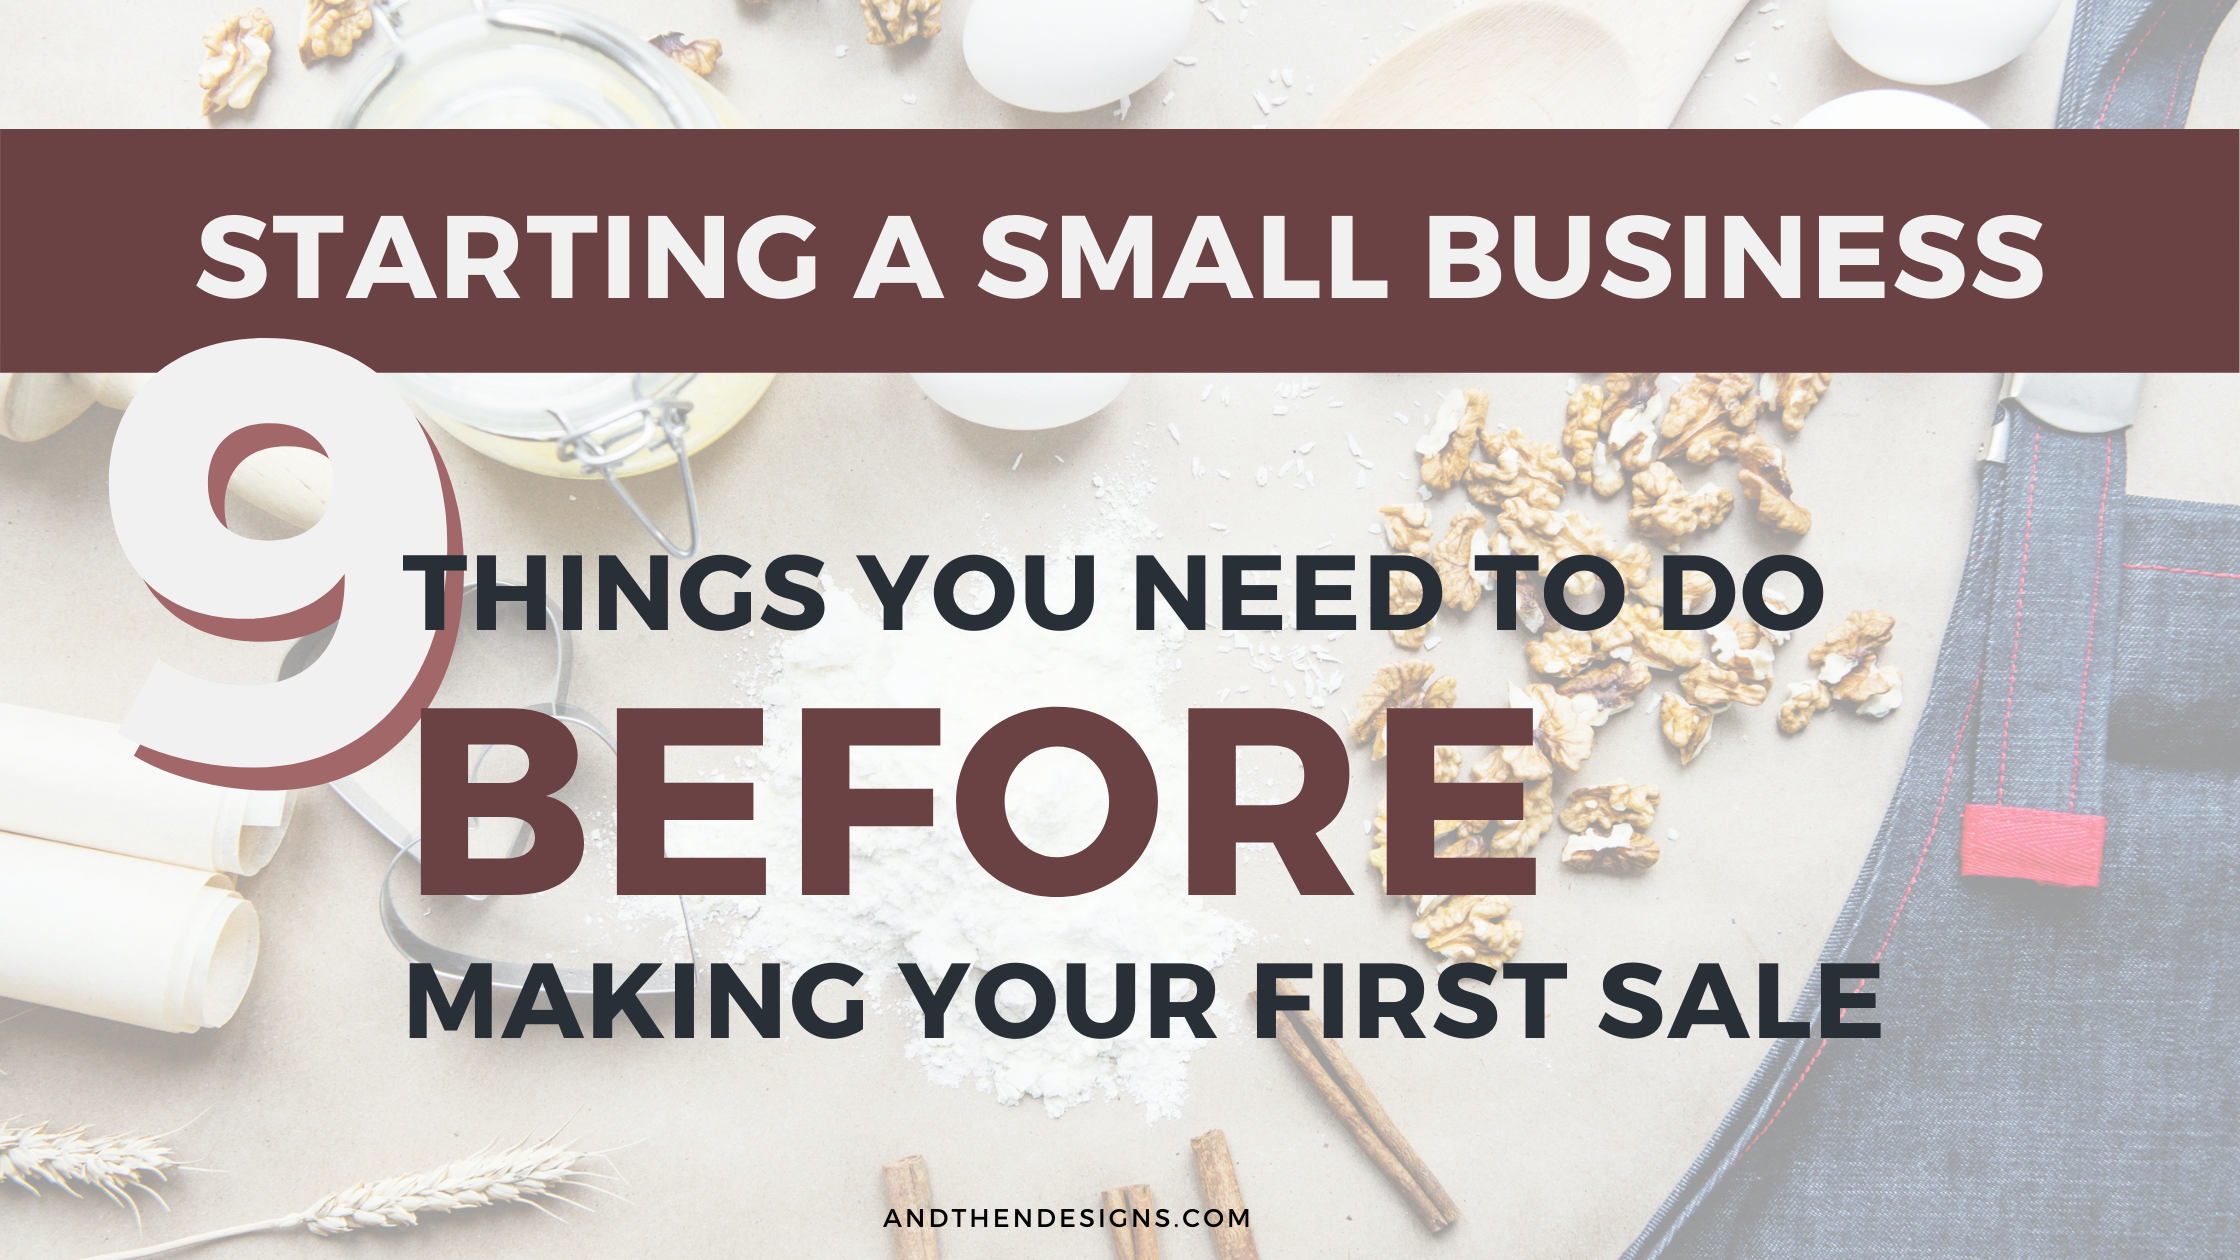 Starting a Small Business – 9 Things You Need to Do Before Making Your First Sale